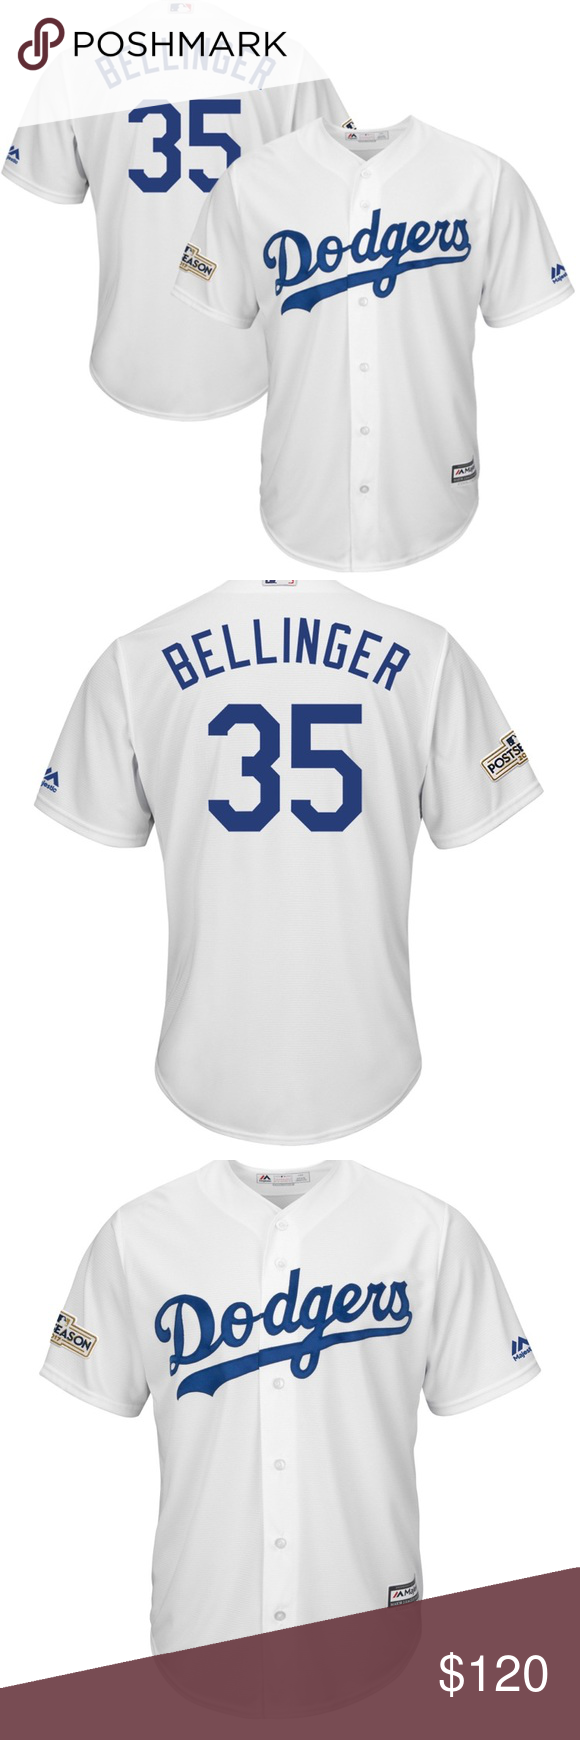 premium selection 30ef0 3ae7a Brand New Mans Small Bellinger Dodger Jersey . Los Angeles ...